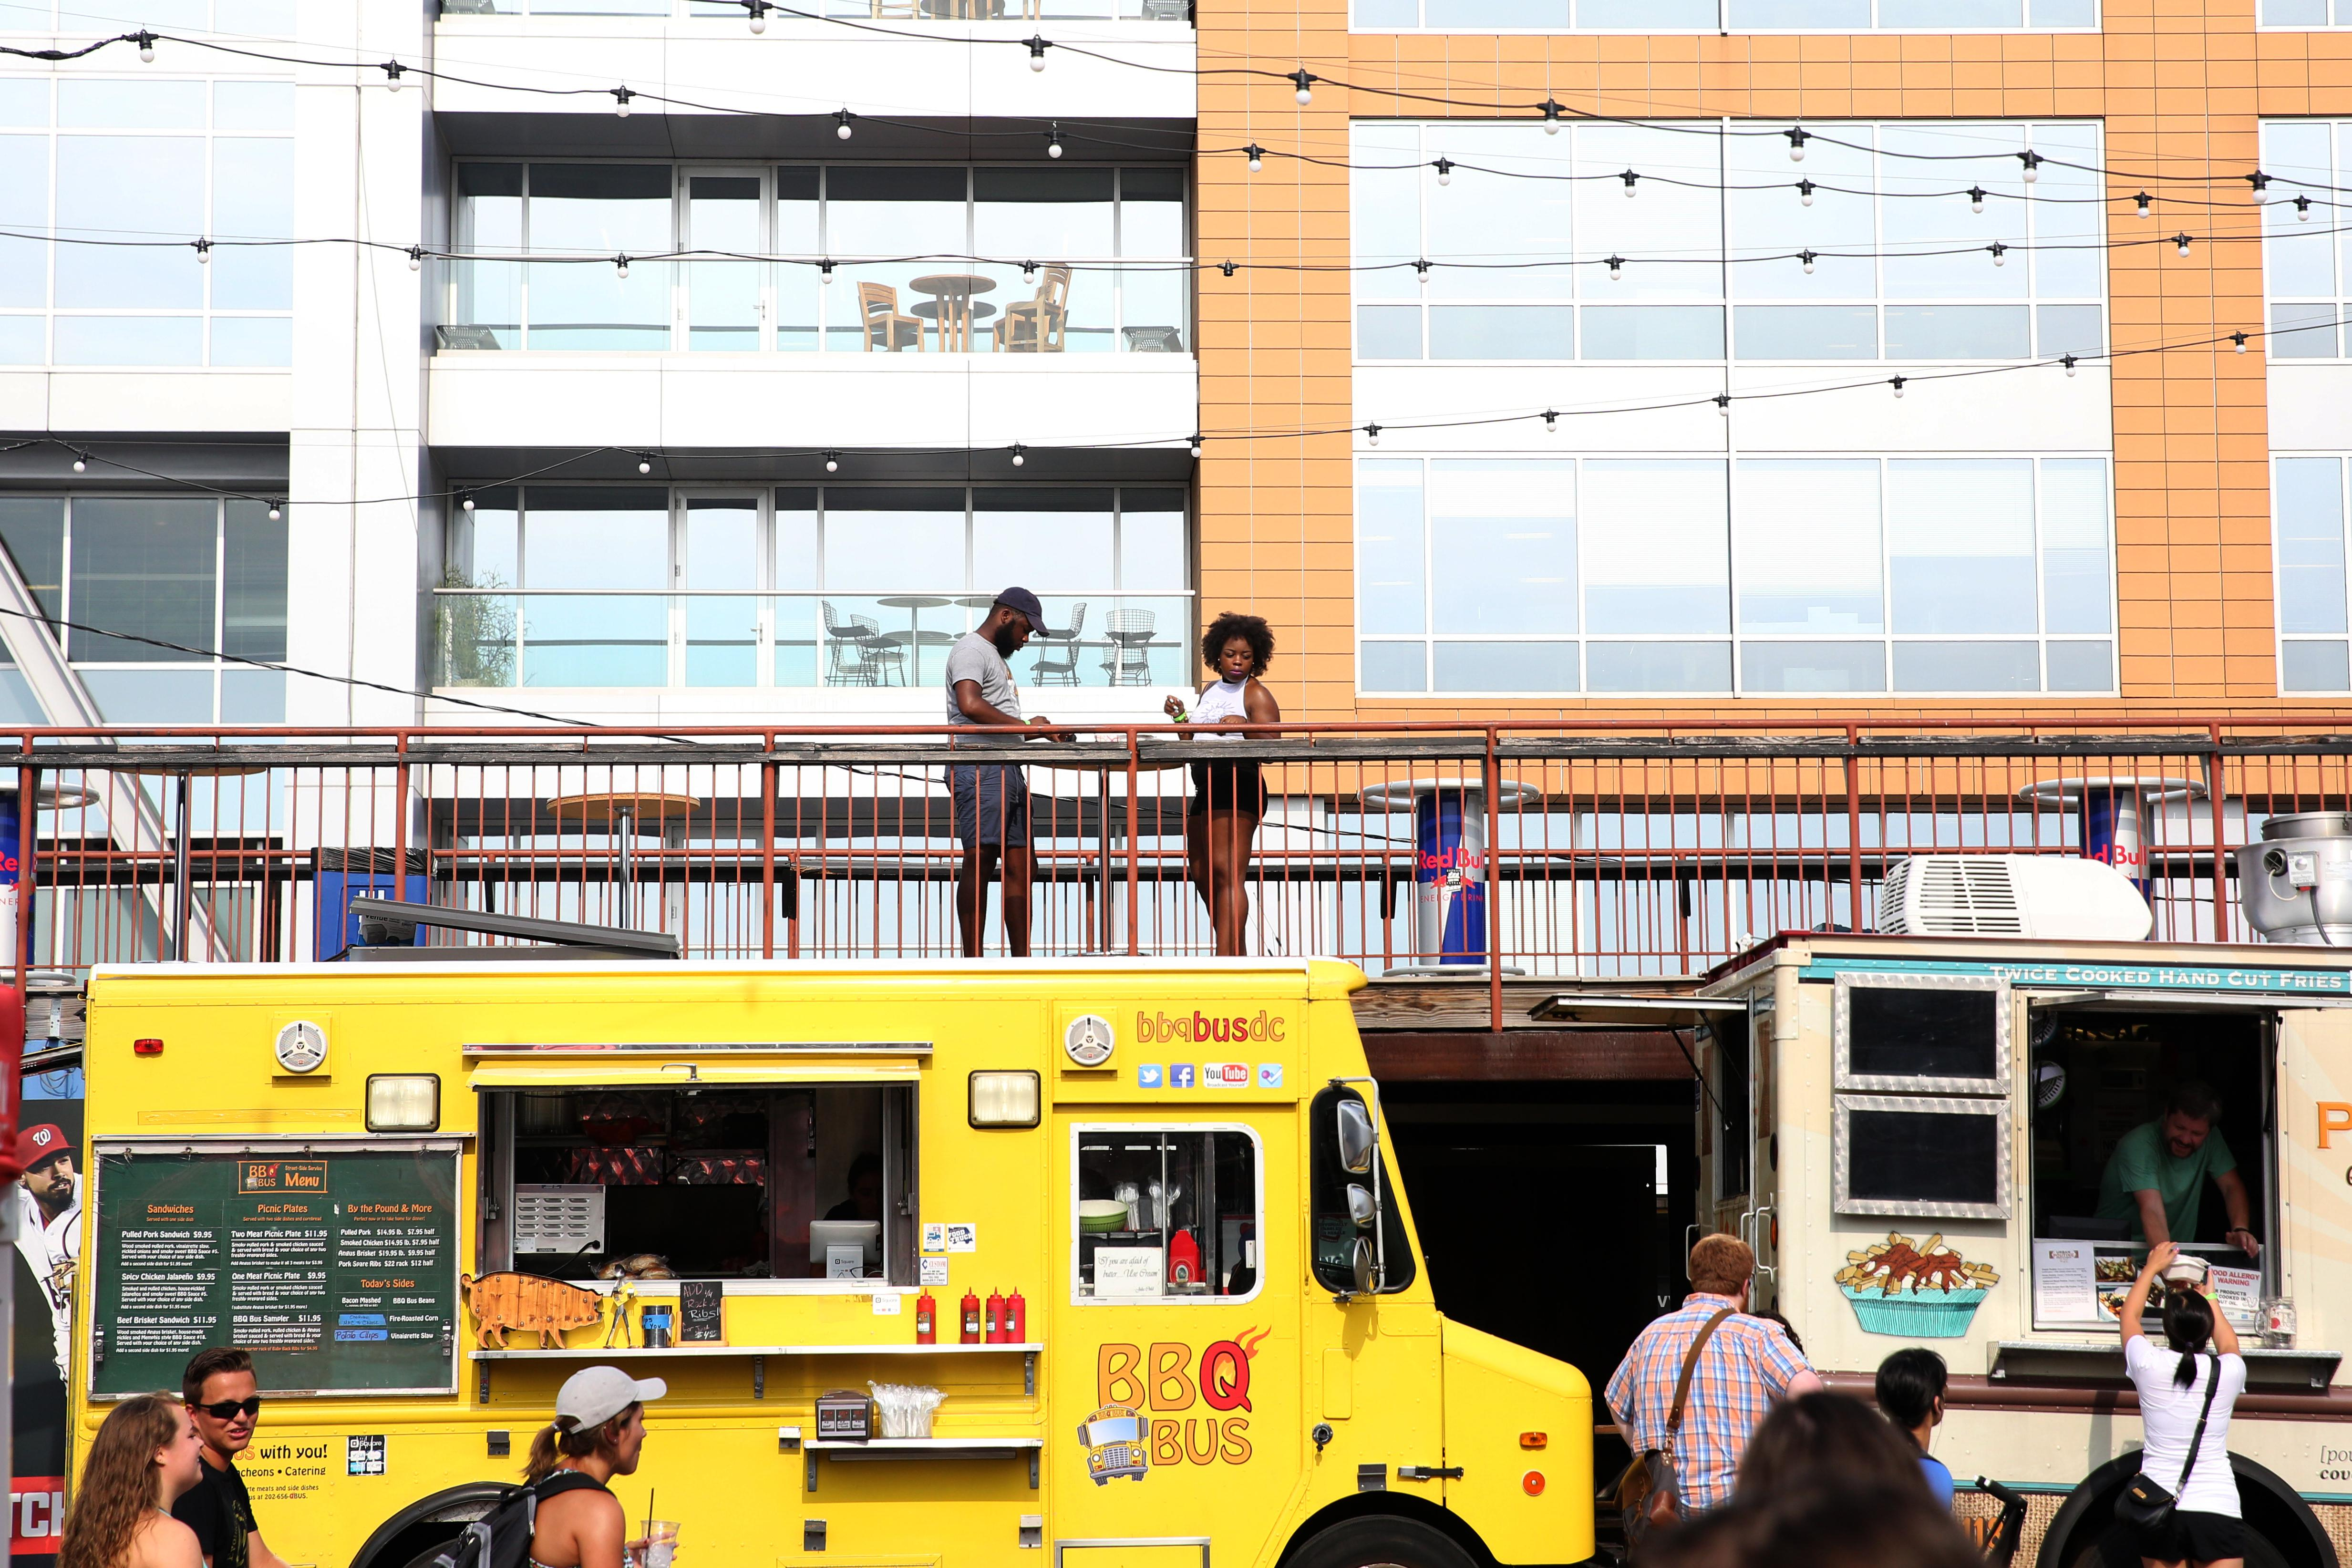 Every month, Truckeroo brings some of the DMV's best food trucks to The Bullpen, on the edge of Nat's Park. The next food truck festival will be held on August 4, so be sure to get in line early for a cold beer and top off your meal with a sweet treat. (Amanda Andrade-Rhoades/DC Refined)